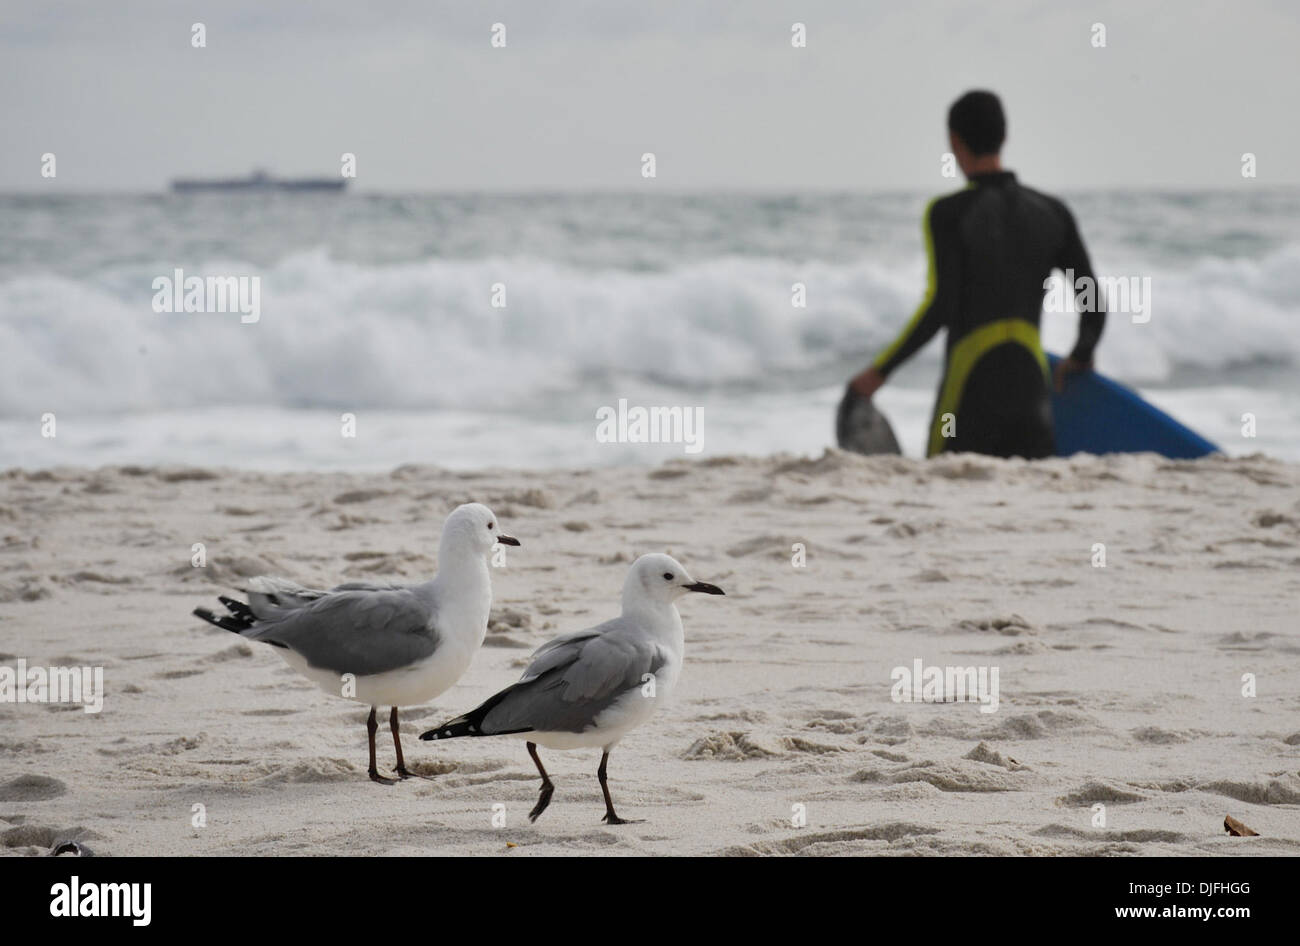 June 13, 2010 - Cape Town, SOUTH AFRICA - Seagulls walk on the beach in the Camps Bay suburb of Cape Town Sunday, June 13, 2010 in South Africa. (Credit Image: © Mark Sobhani/ZUMApress.com) Stock Photo